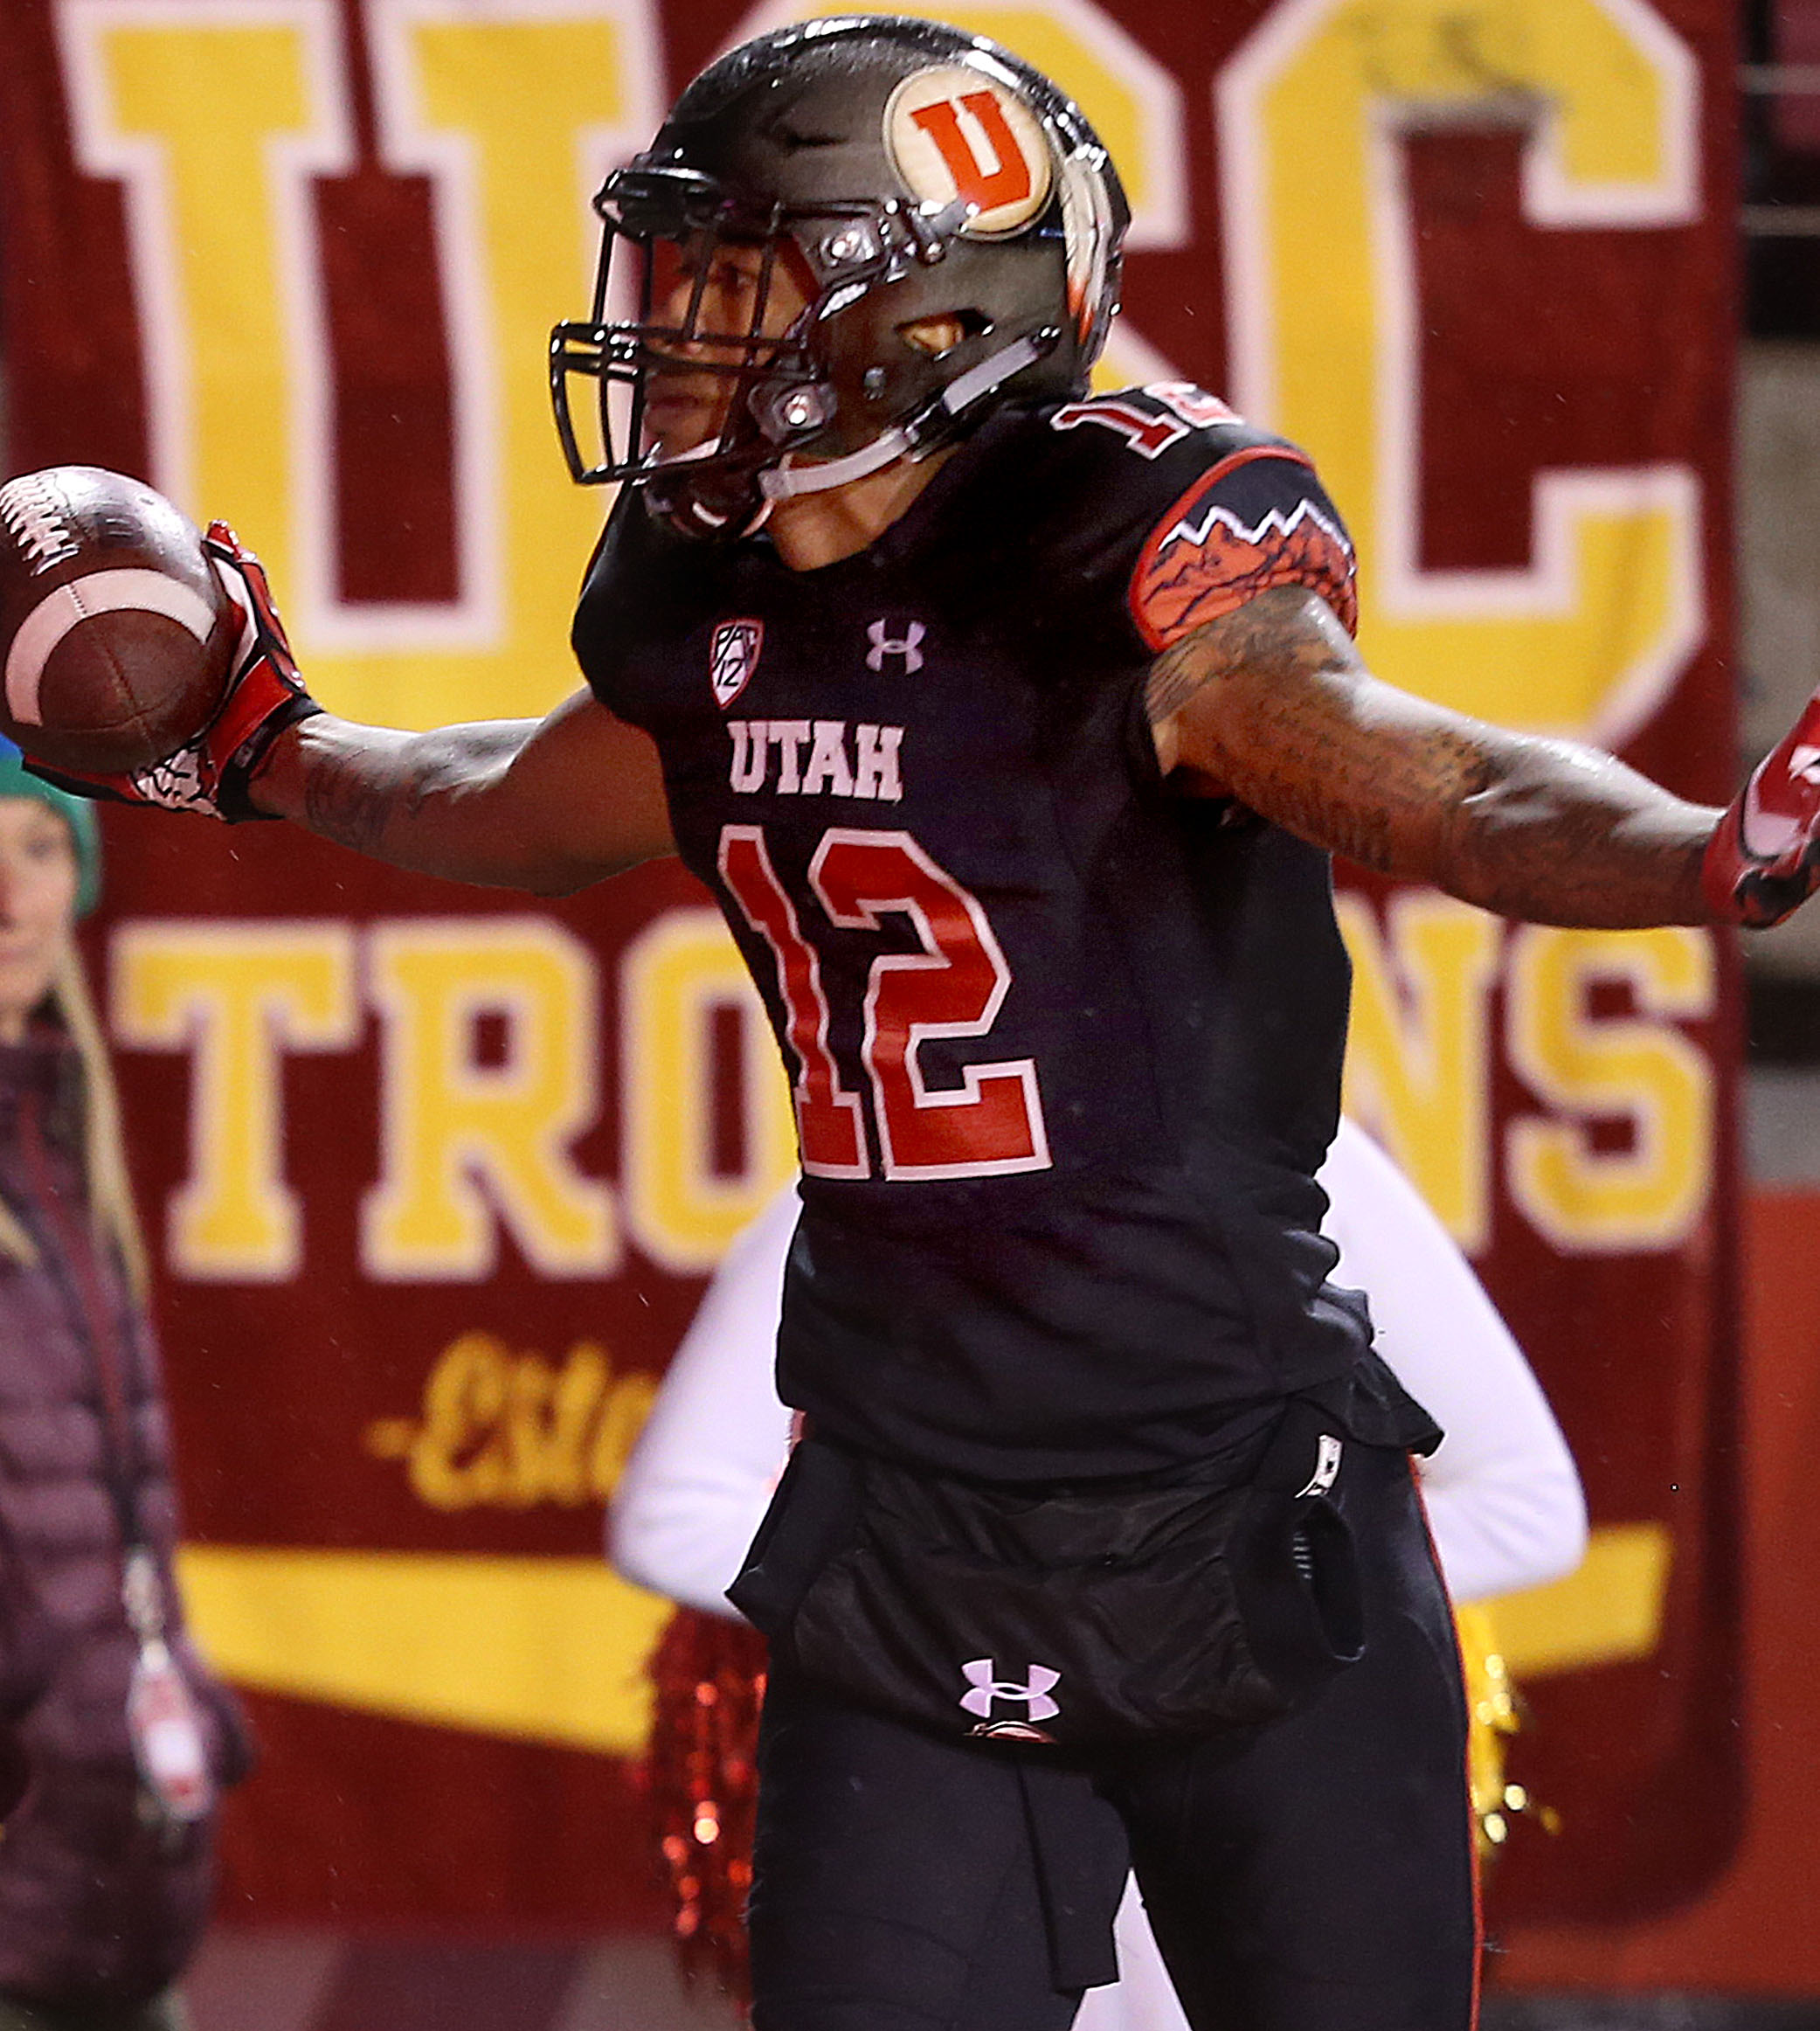 Utah Utes wide receiver Tim Patrick stands with his arms outstretched